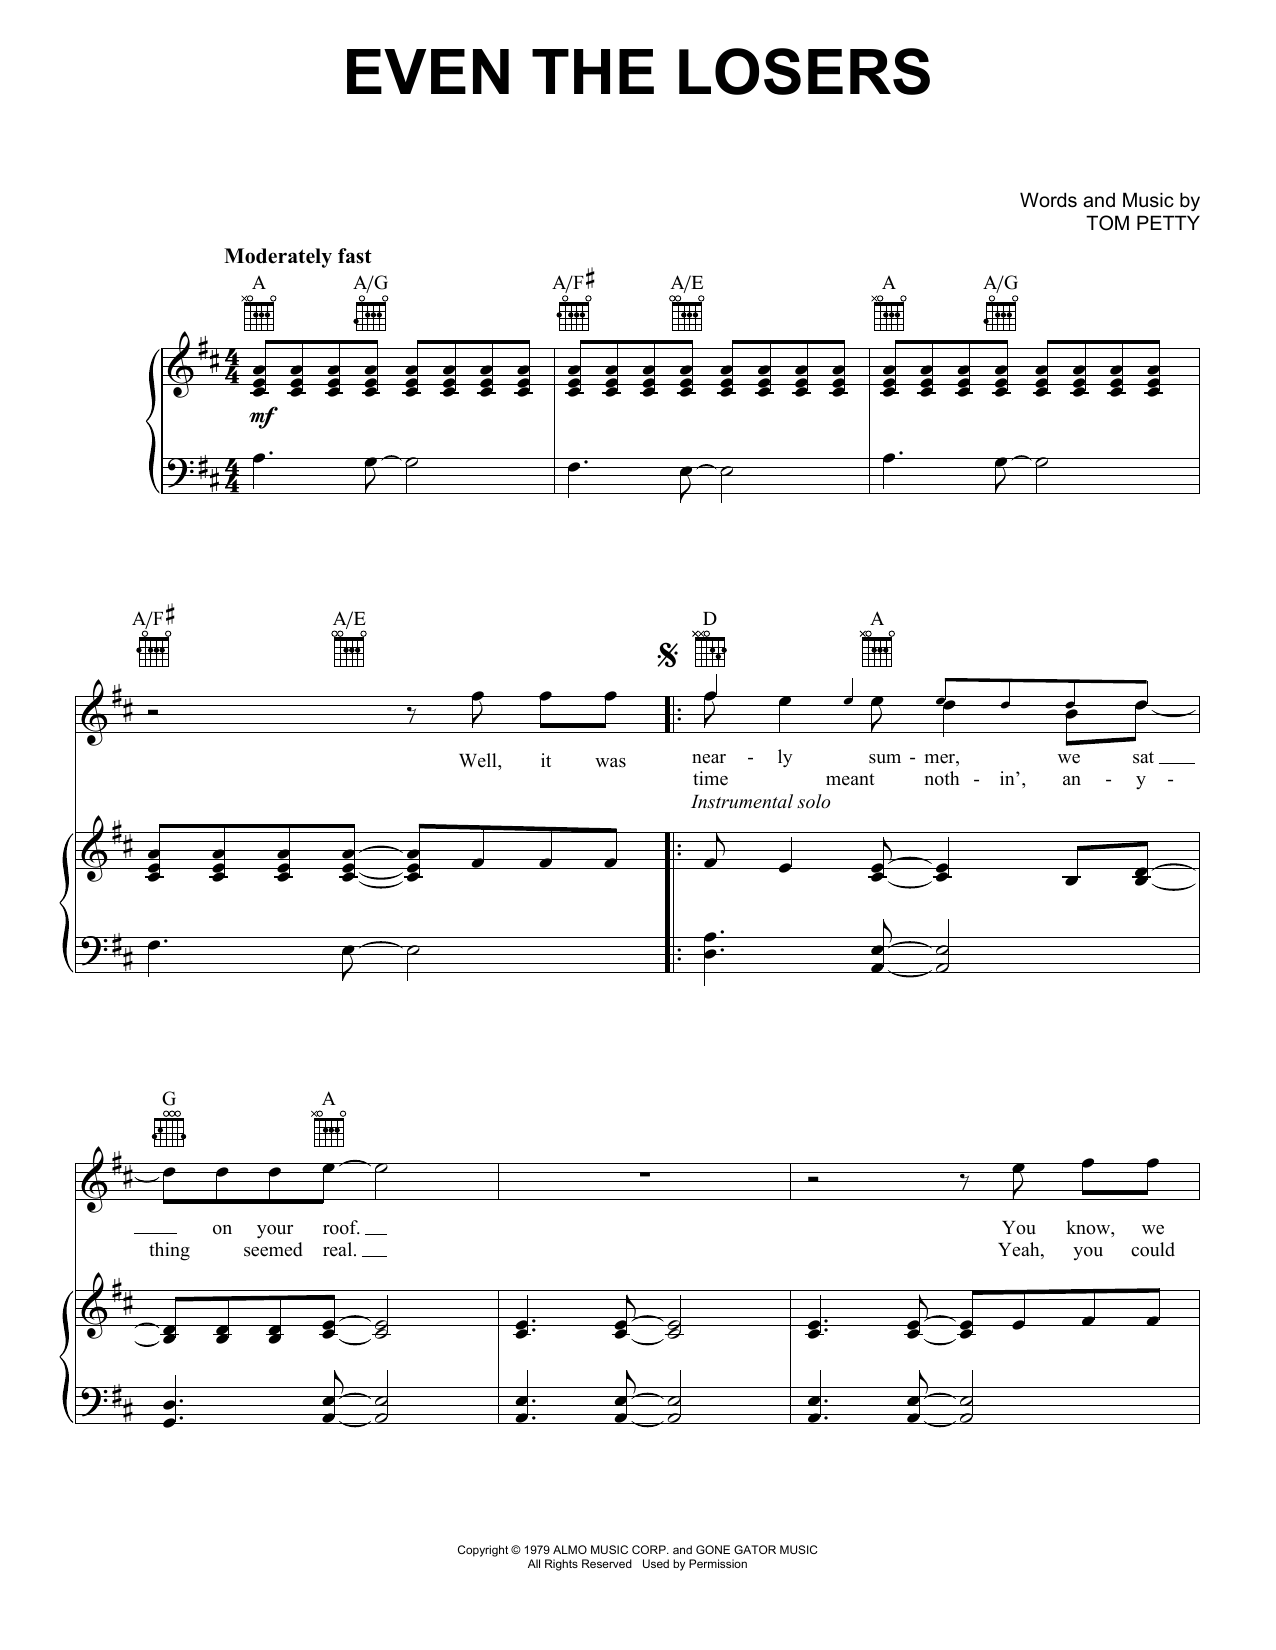 Tom Petty And The Heartbreakers Even The Losers sheet music notes and chords. Download Printable PDF.